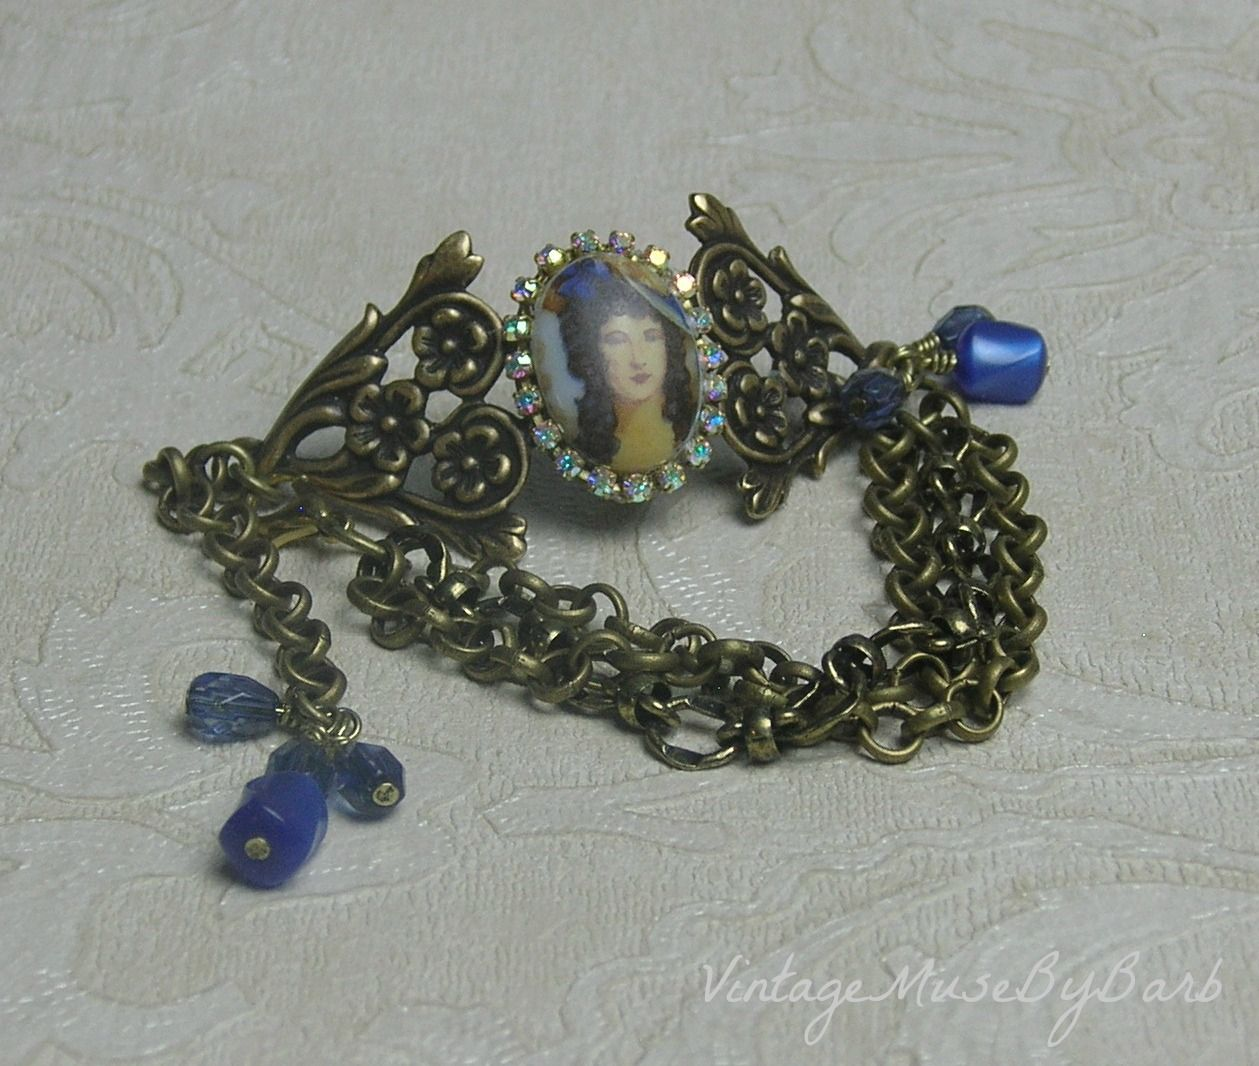 """FUF 05/19/17 """"Lady in a Blue Hat""""  Vintage cameo on brass ox cuff, triple chain, vintage moonglow Lucite beads, AB rhinestone cup chain, blue teardrop czech beads.  All from bsueboutiques, bsueboutiquesupplies on Etsy except clasp and Lucite beads.  By Barbara Kelley"""